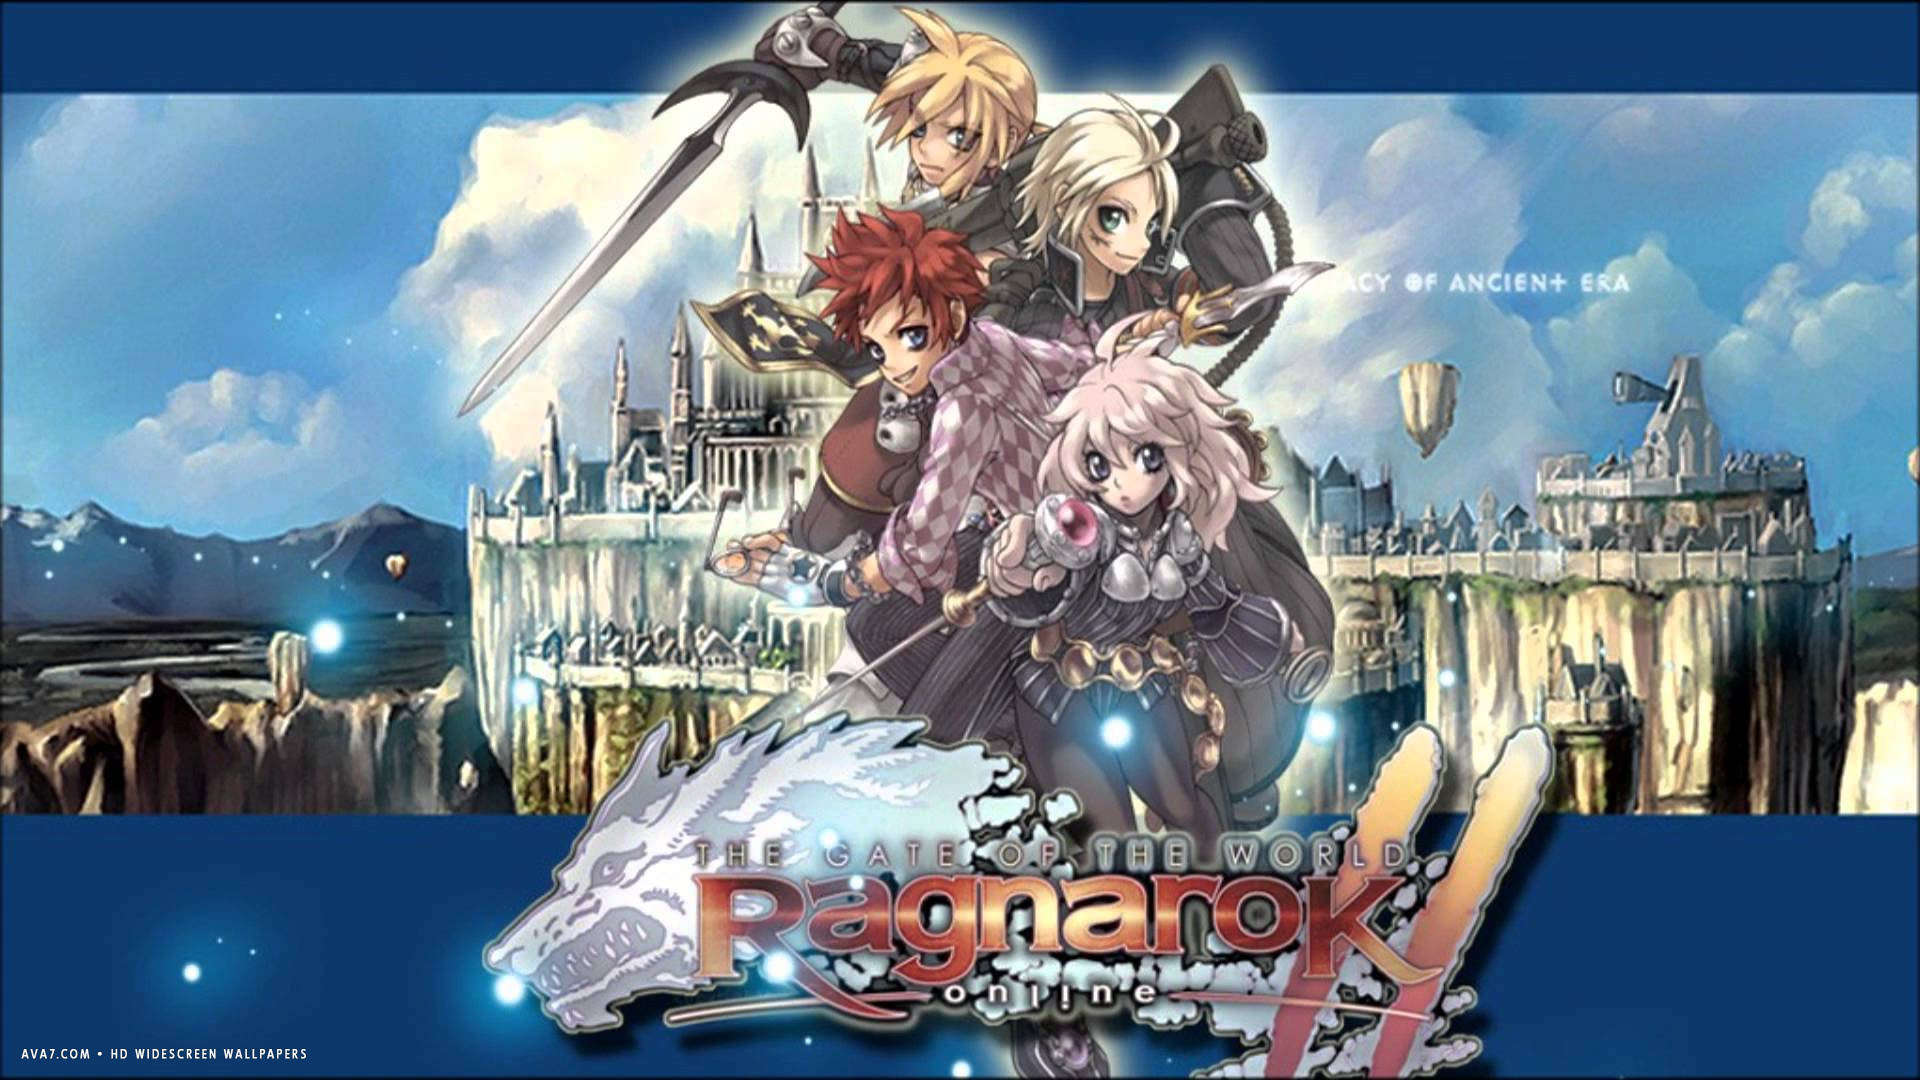 Res: 1920x1080, ragnarok online 2 the gate of the world game hd widescreen wallpaper